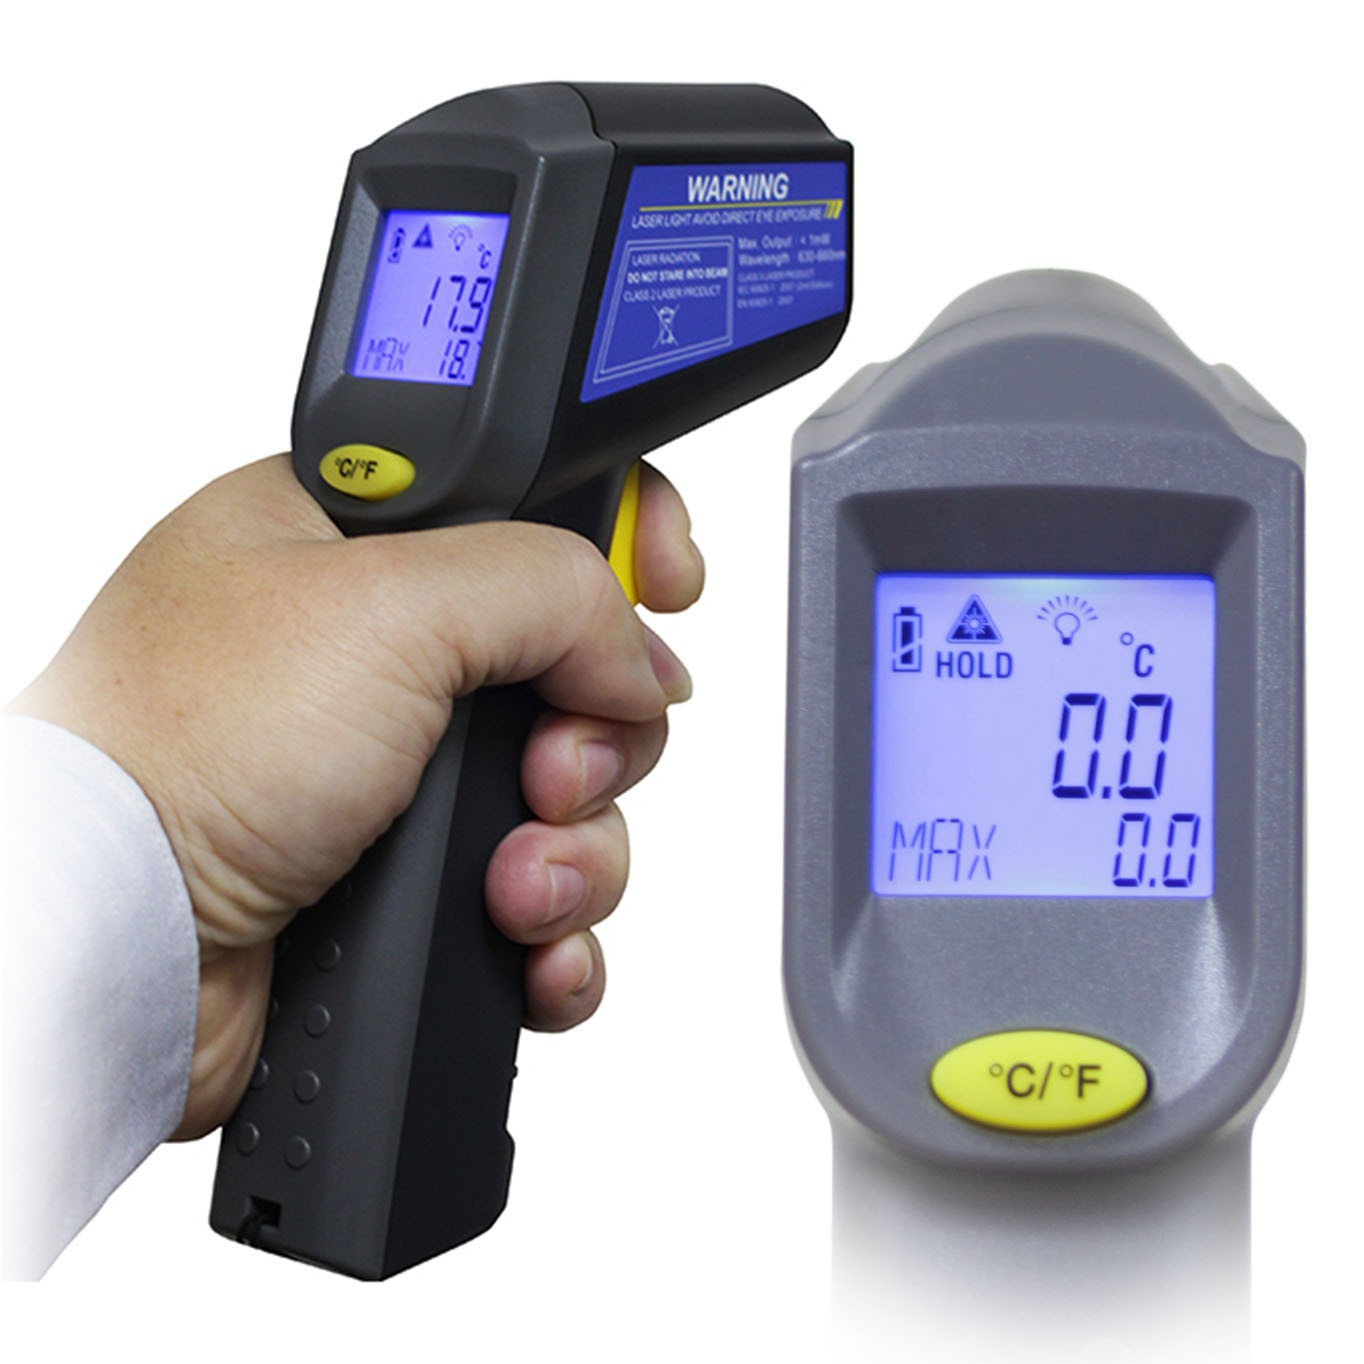 Truck / Agricultural / Heavy Duty Infrared Thermometer for Testing Equipment made by ECPAL VEHICLE CO., LTD. 威爾可有限公司 - MatchSupplier.com